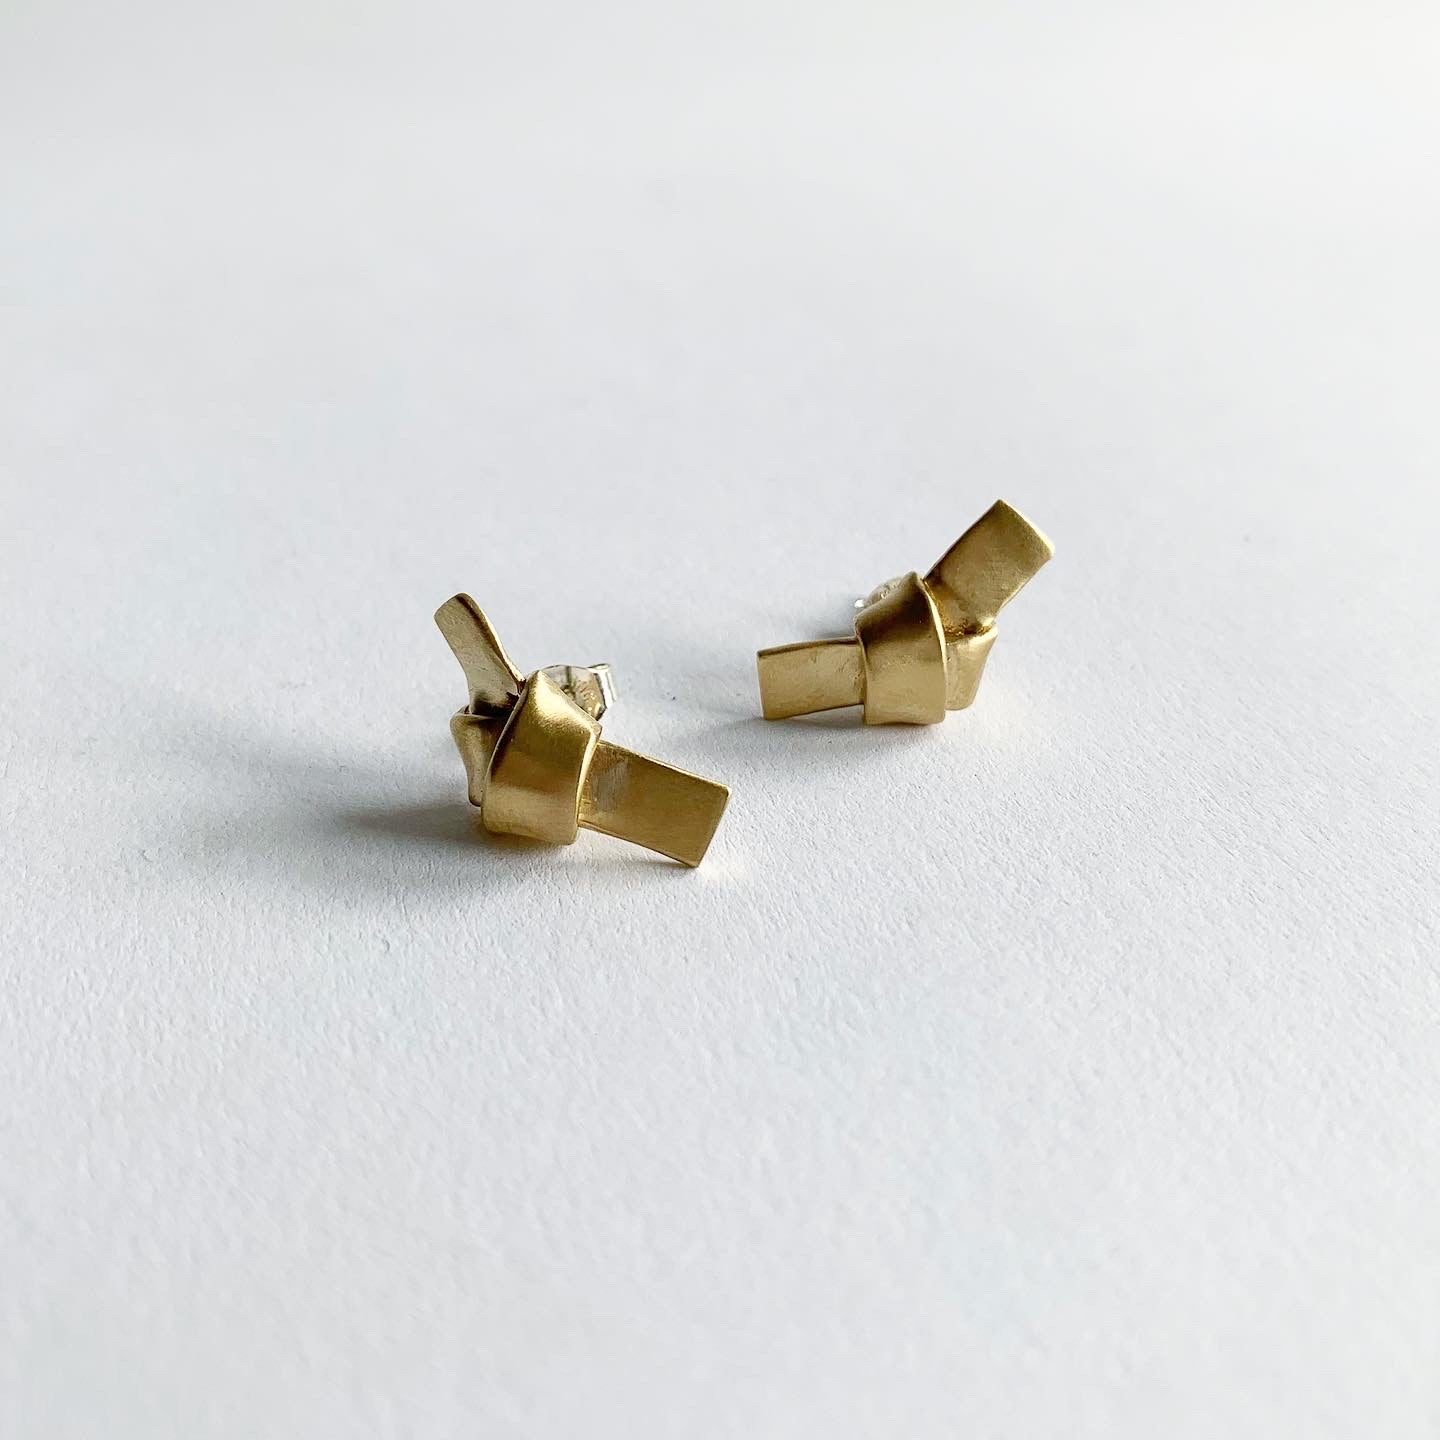 8.6.4. Designs Tiny Knotted Brass Studs